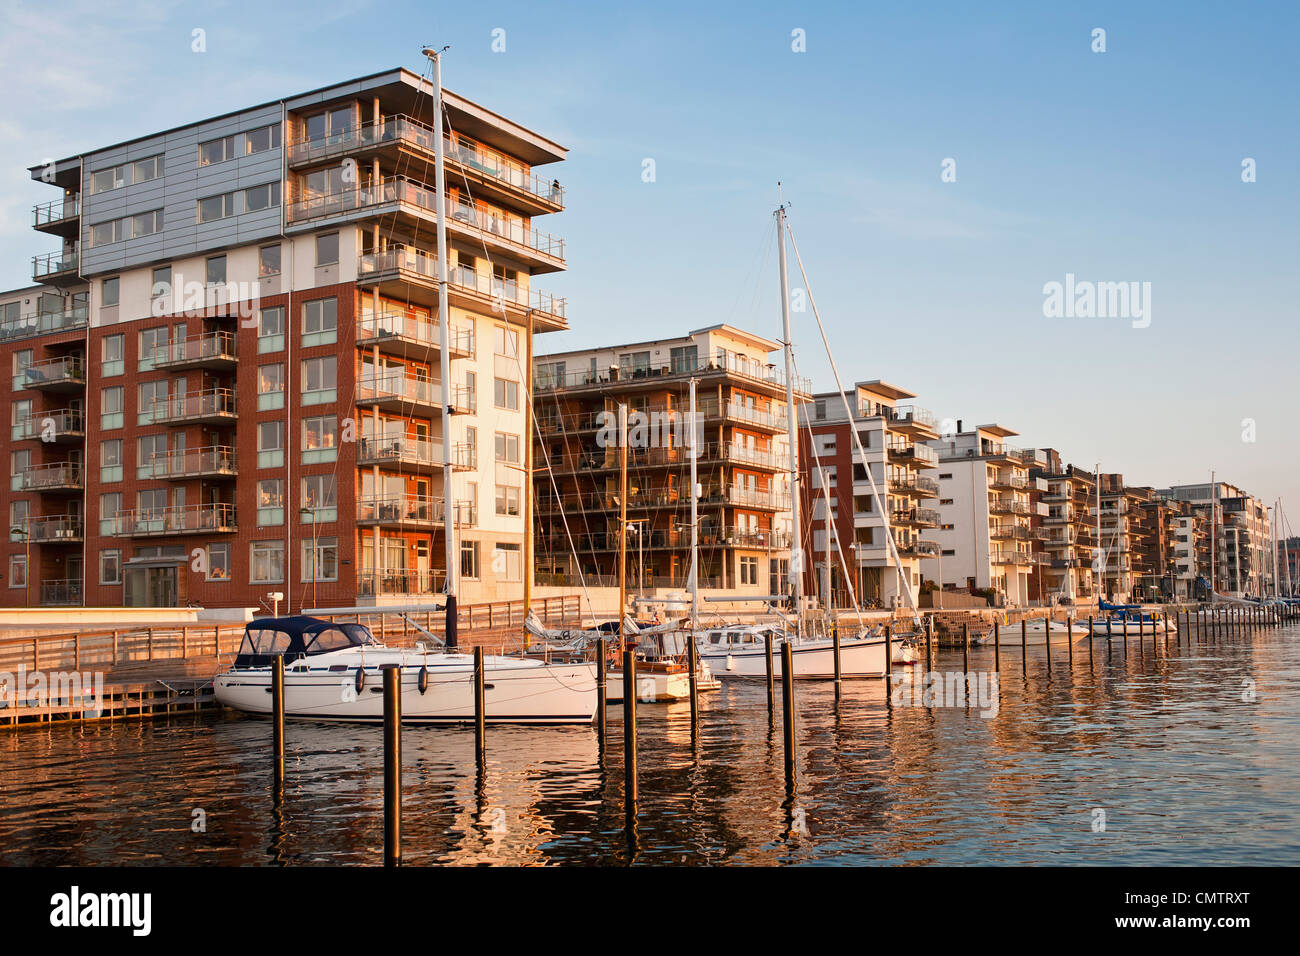 Residential area and nautical vessel against sky - Stock Image